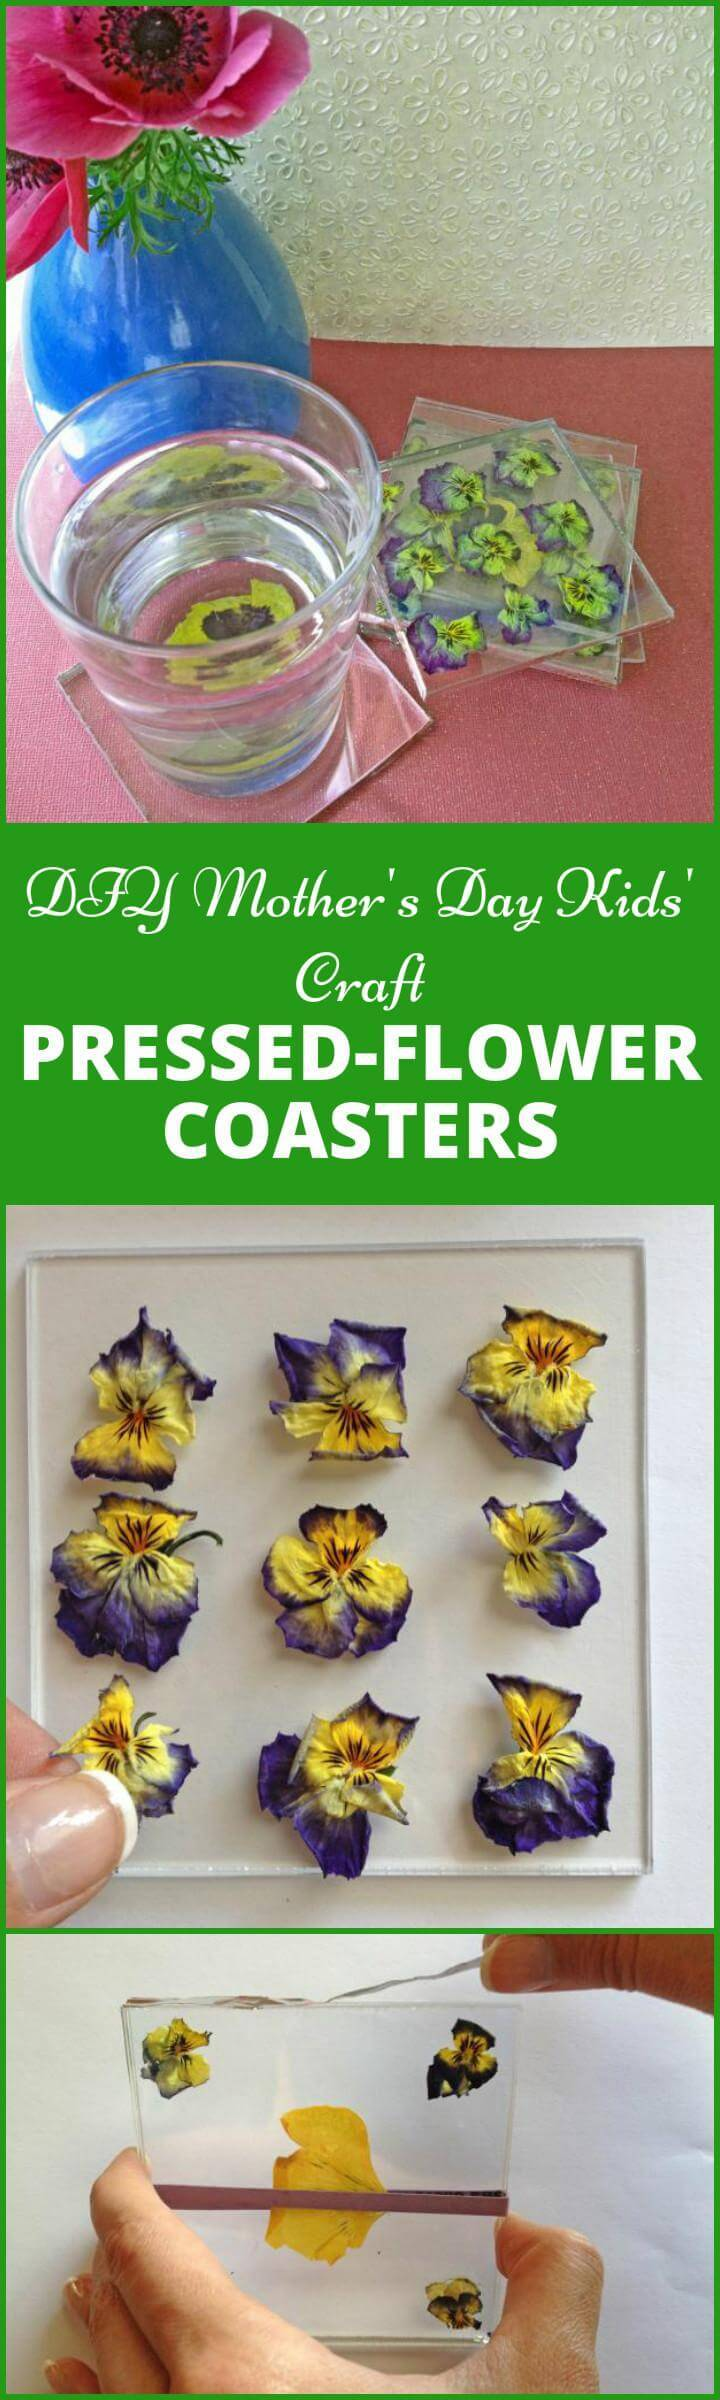 Easy DIY pressed flower coasters for Mother's Day